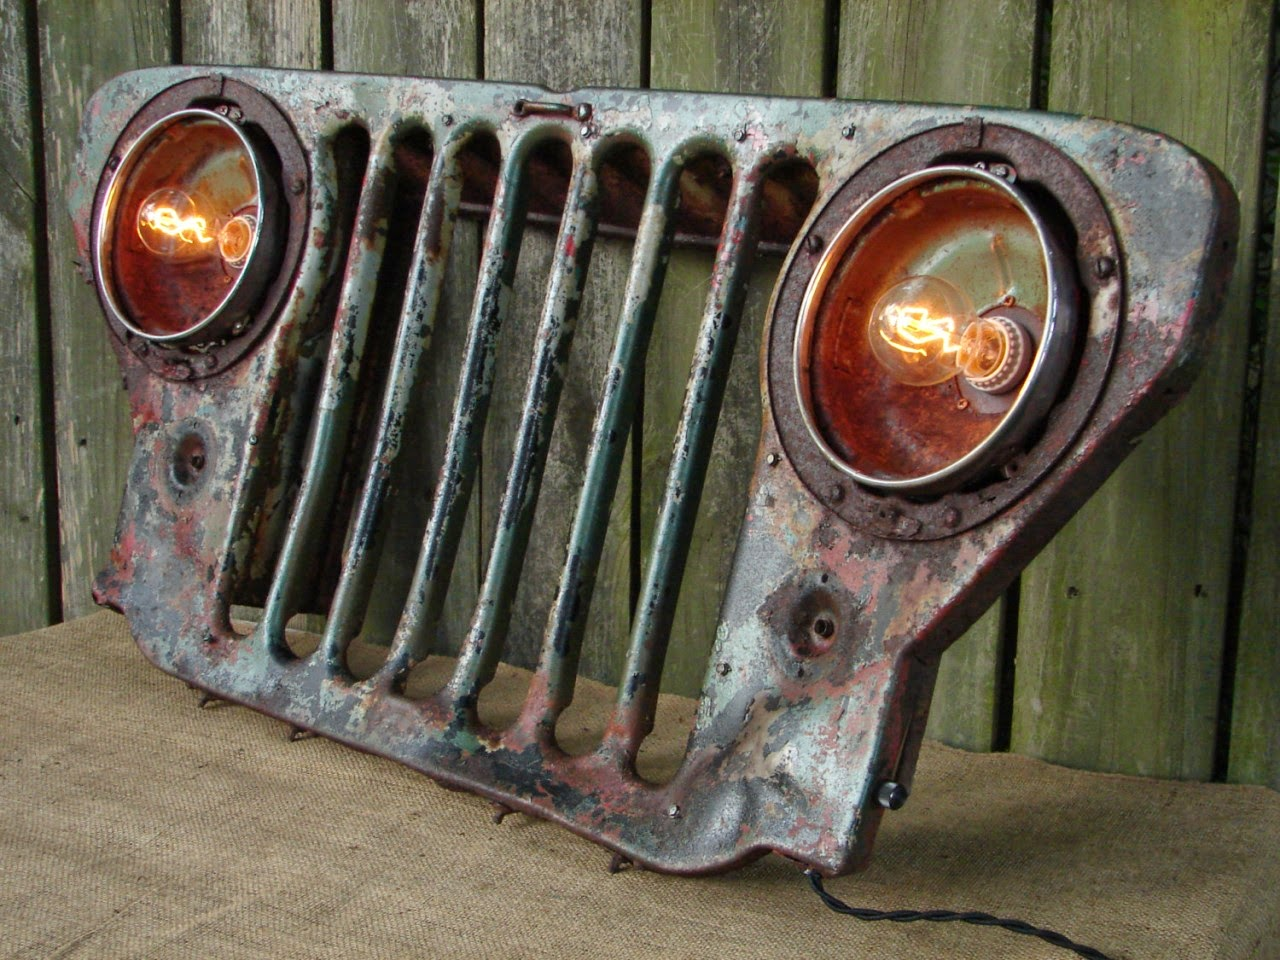 Just a car guy autosaur has posted a collection of car Custom furniture made car parts